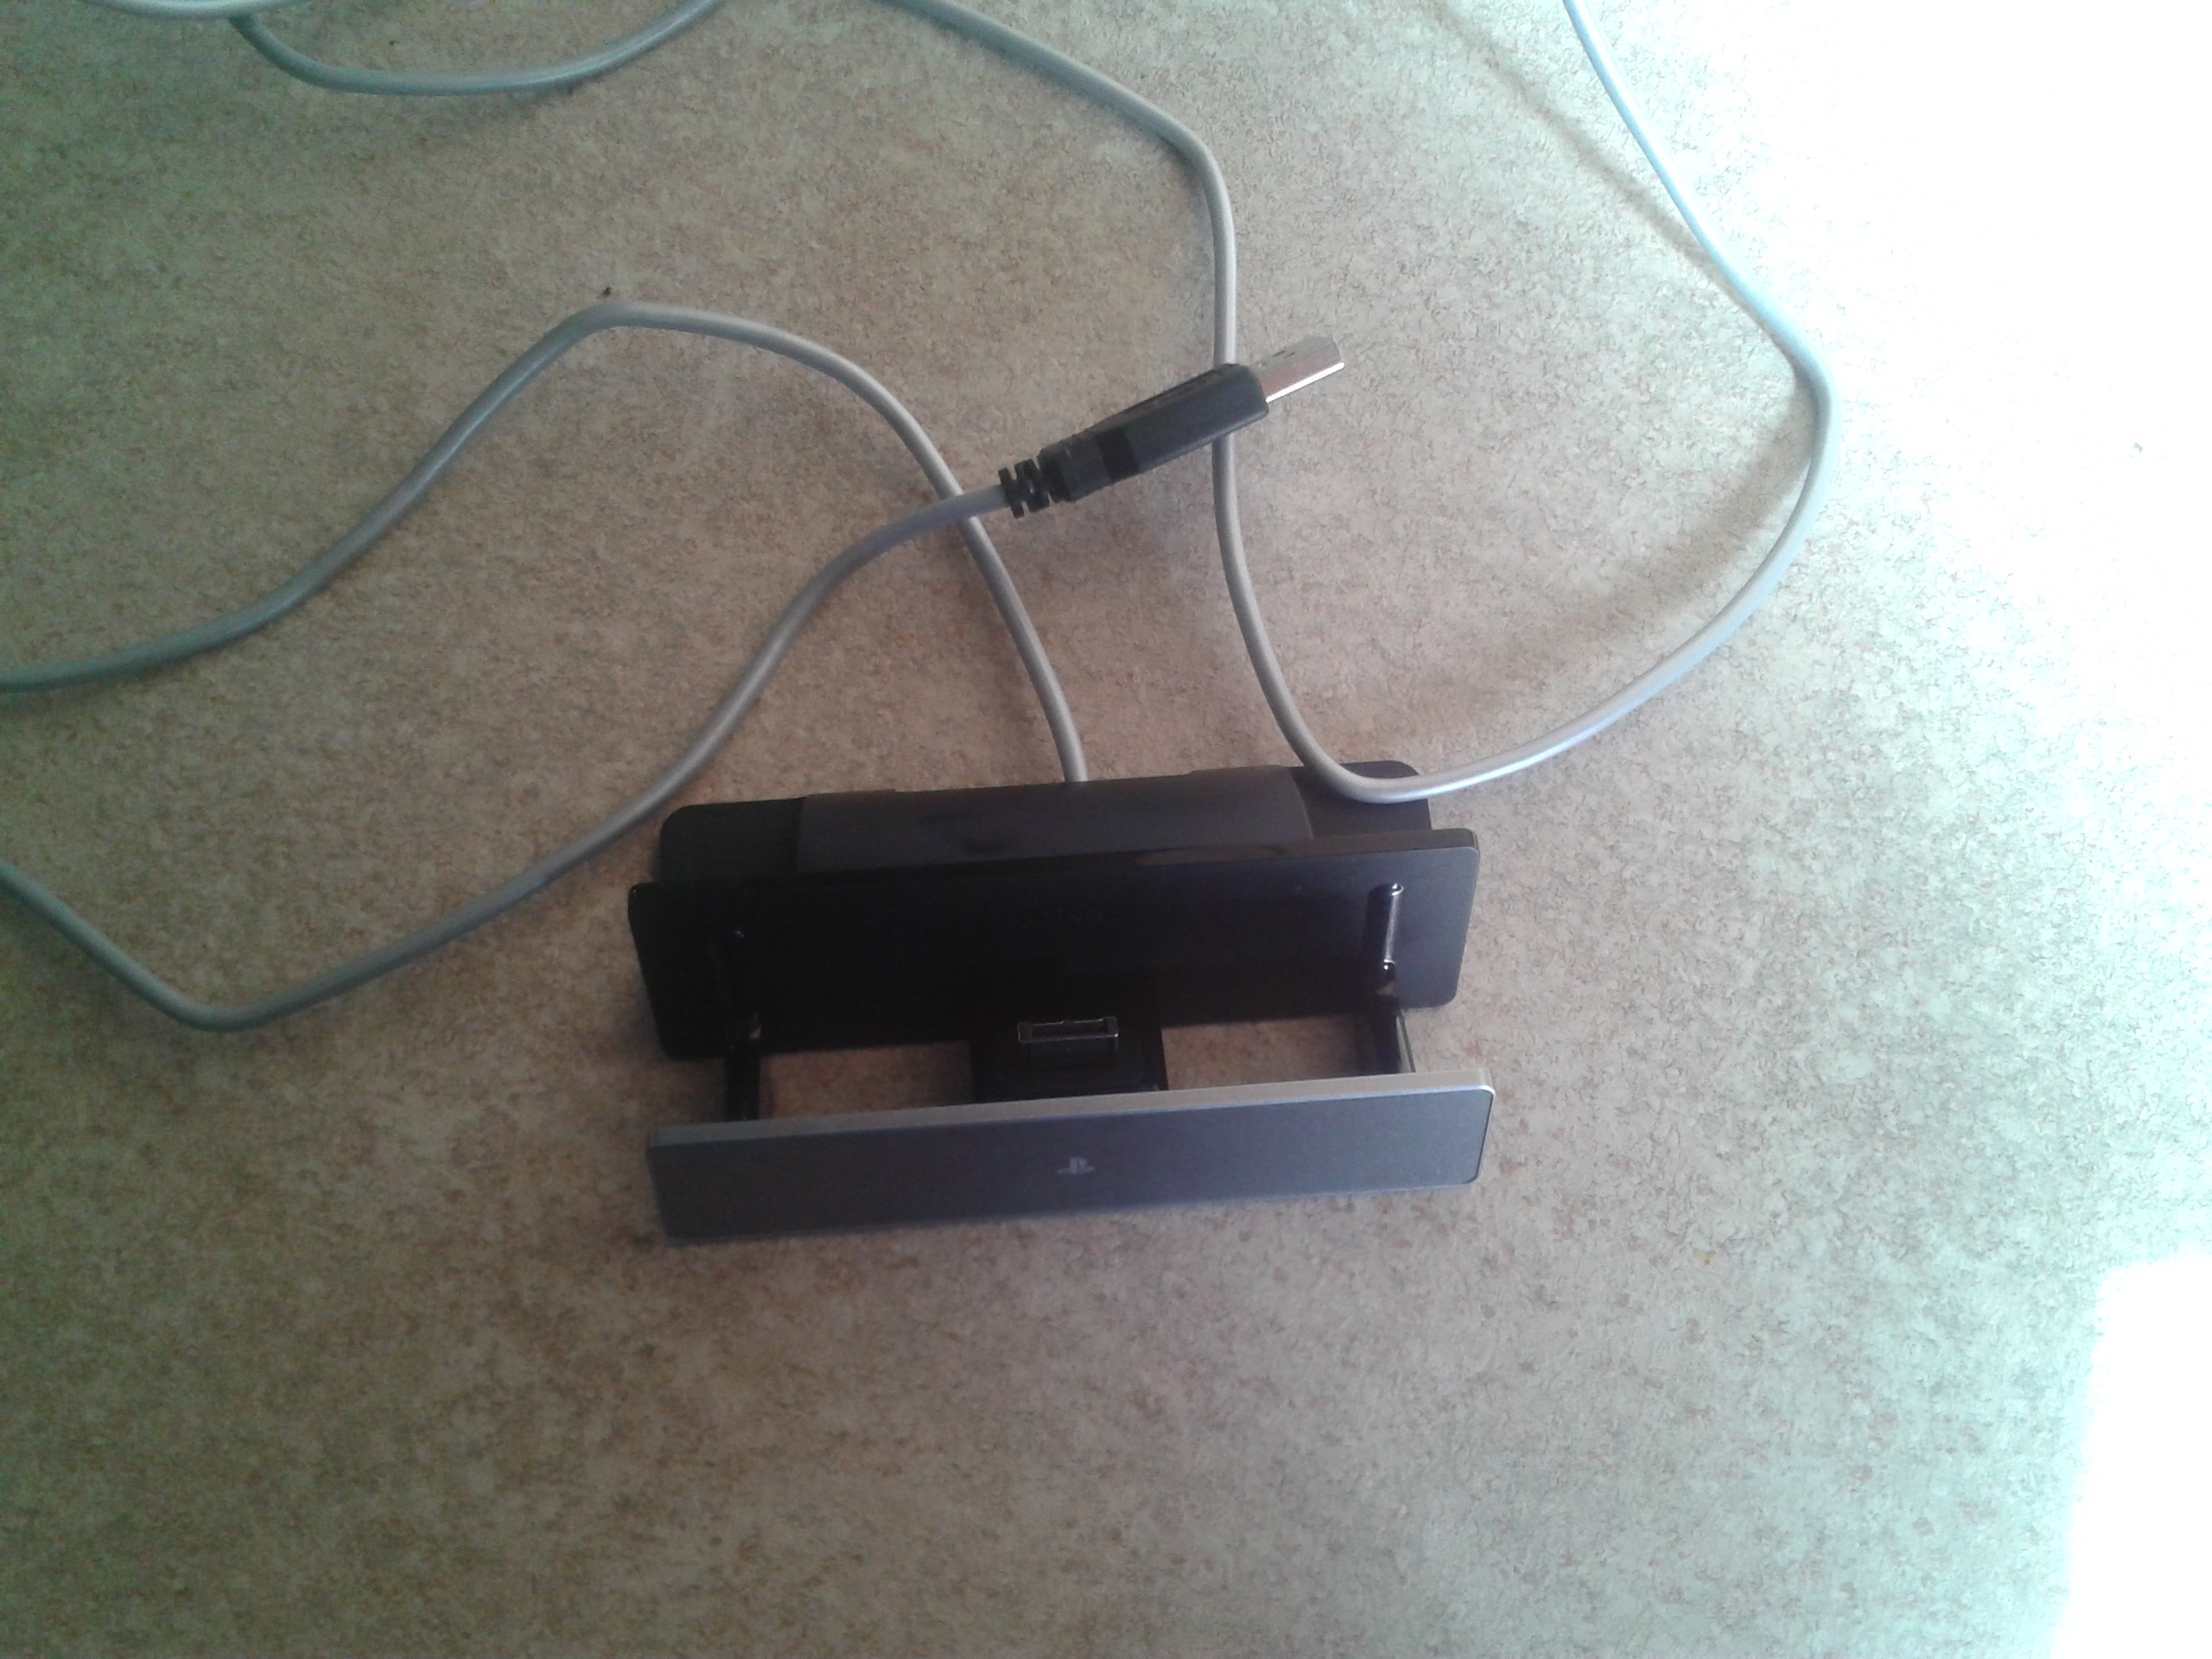 Picture of PS Vita Dock Mod With USB Std Connector